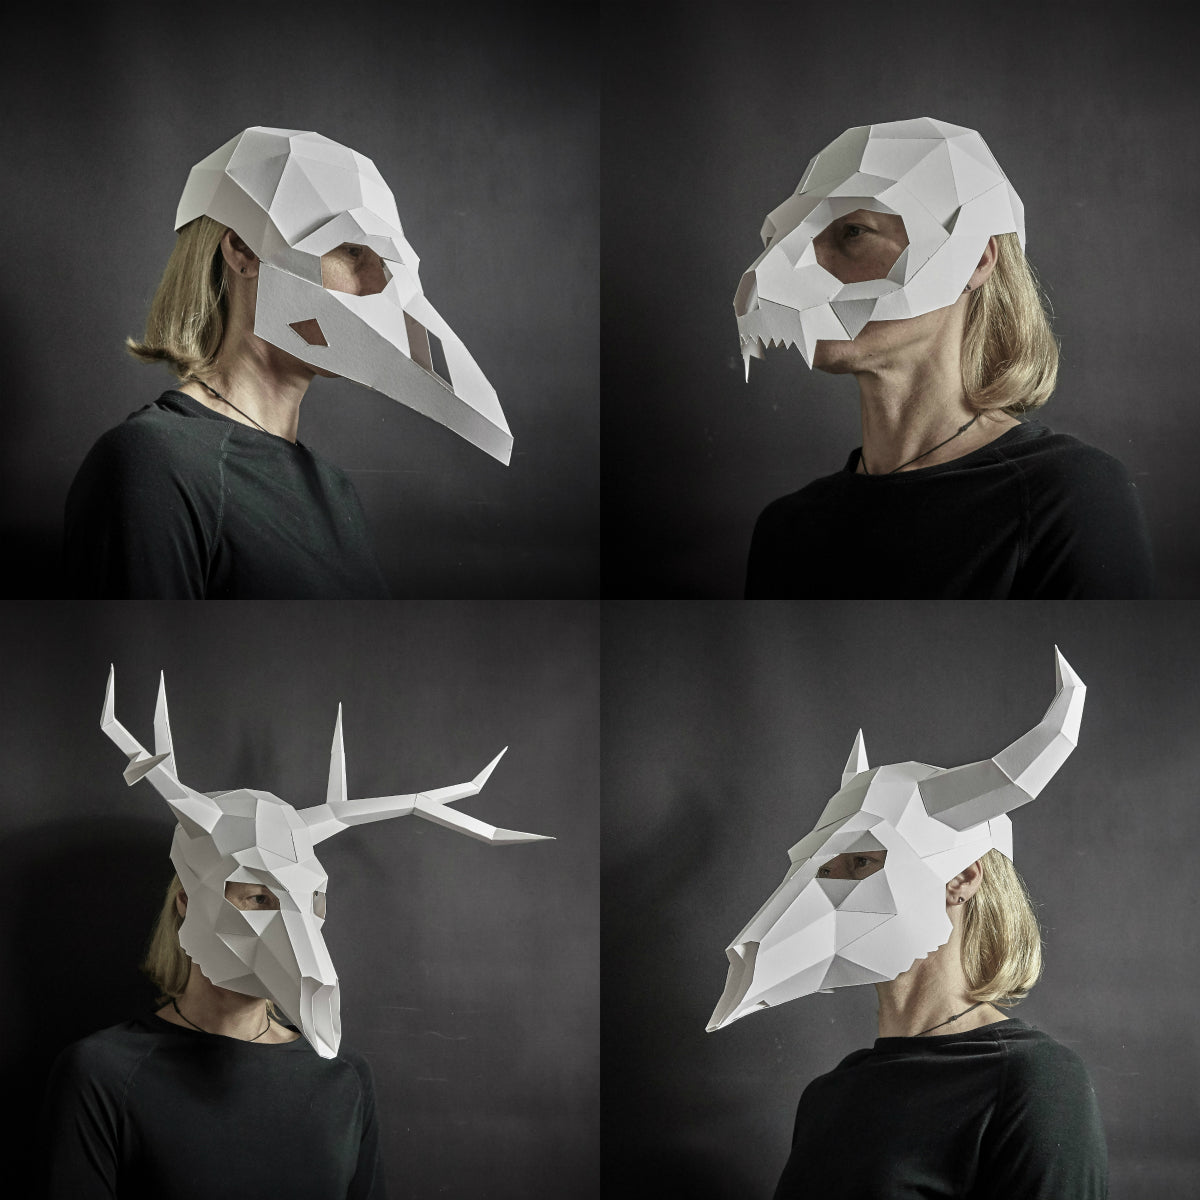 image relating to 3d Paper Mask Template Free Printable named Wintercroft ® - Minimal-Poly Masks